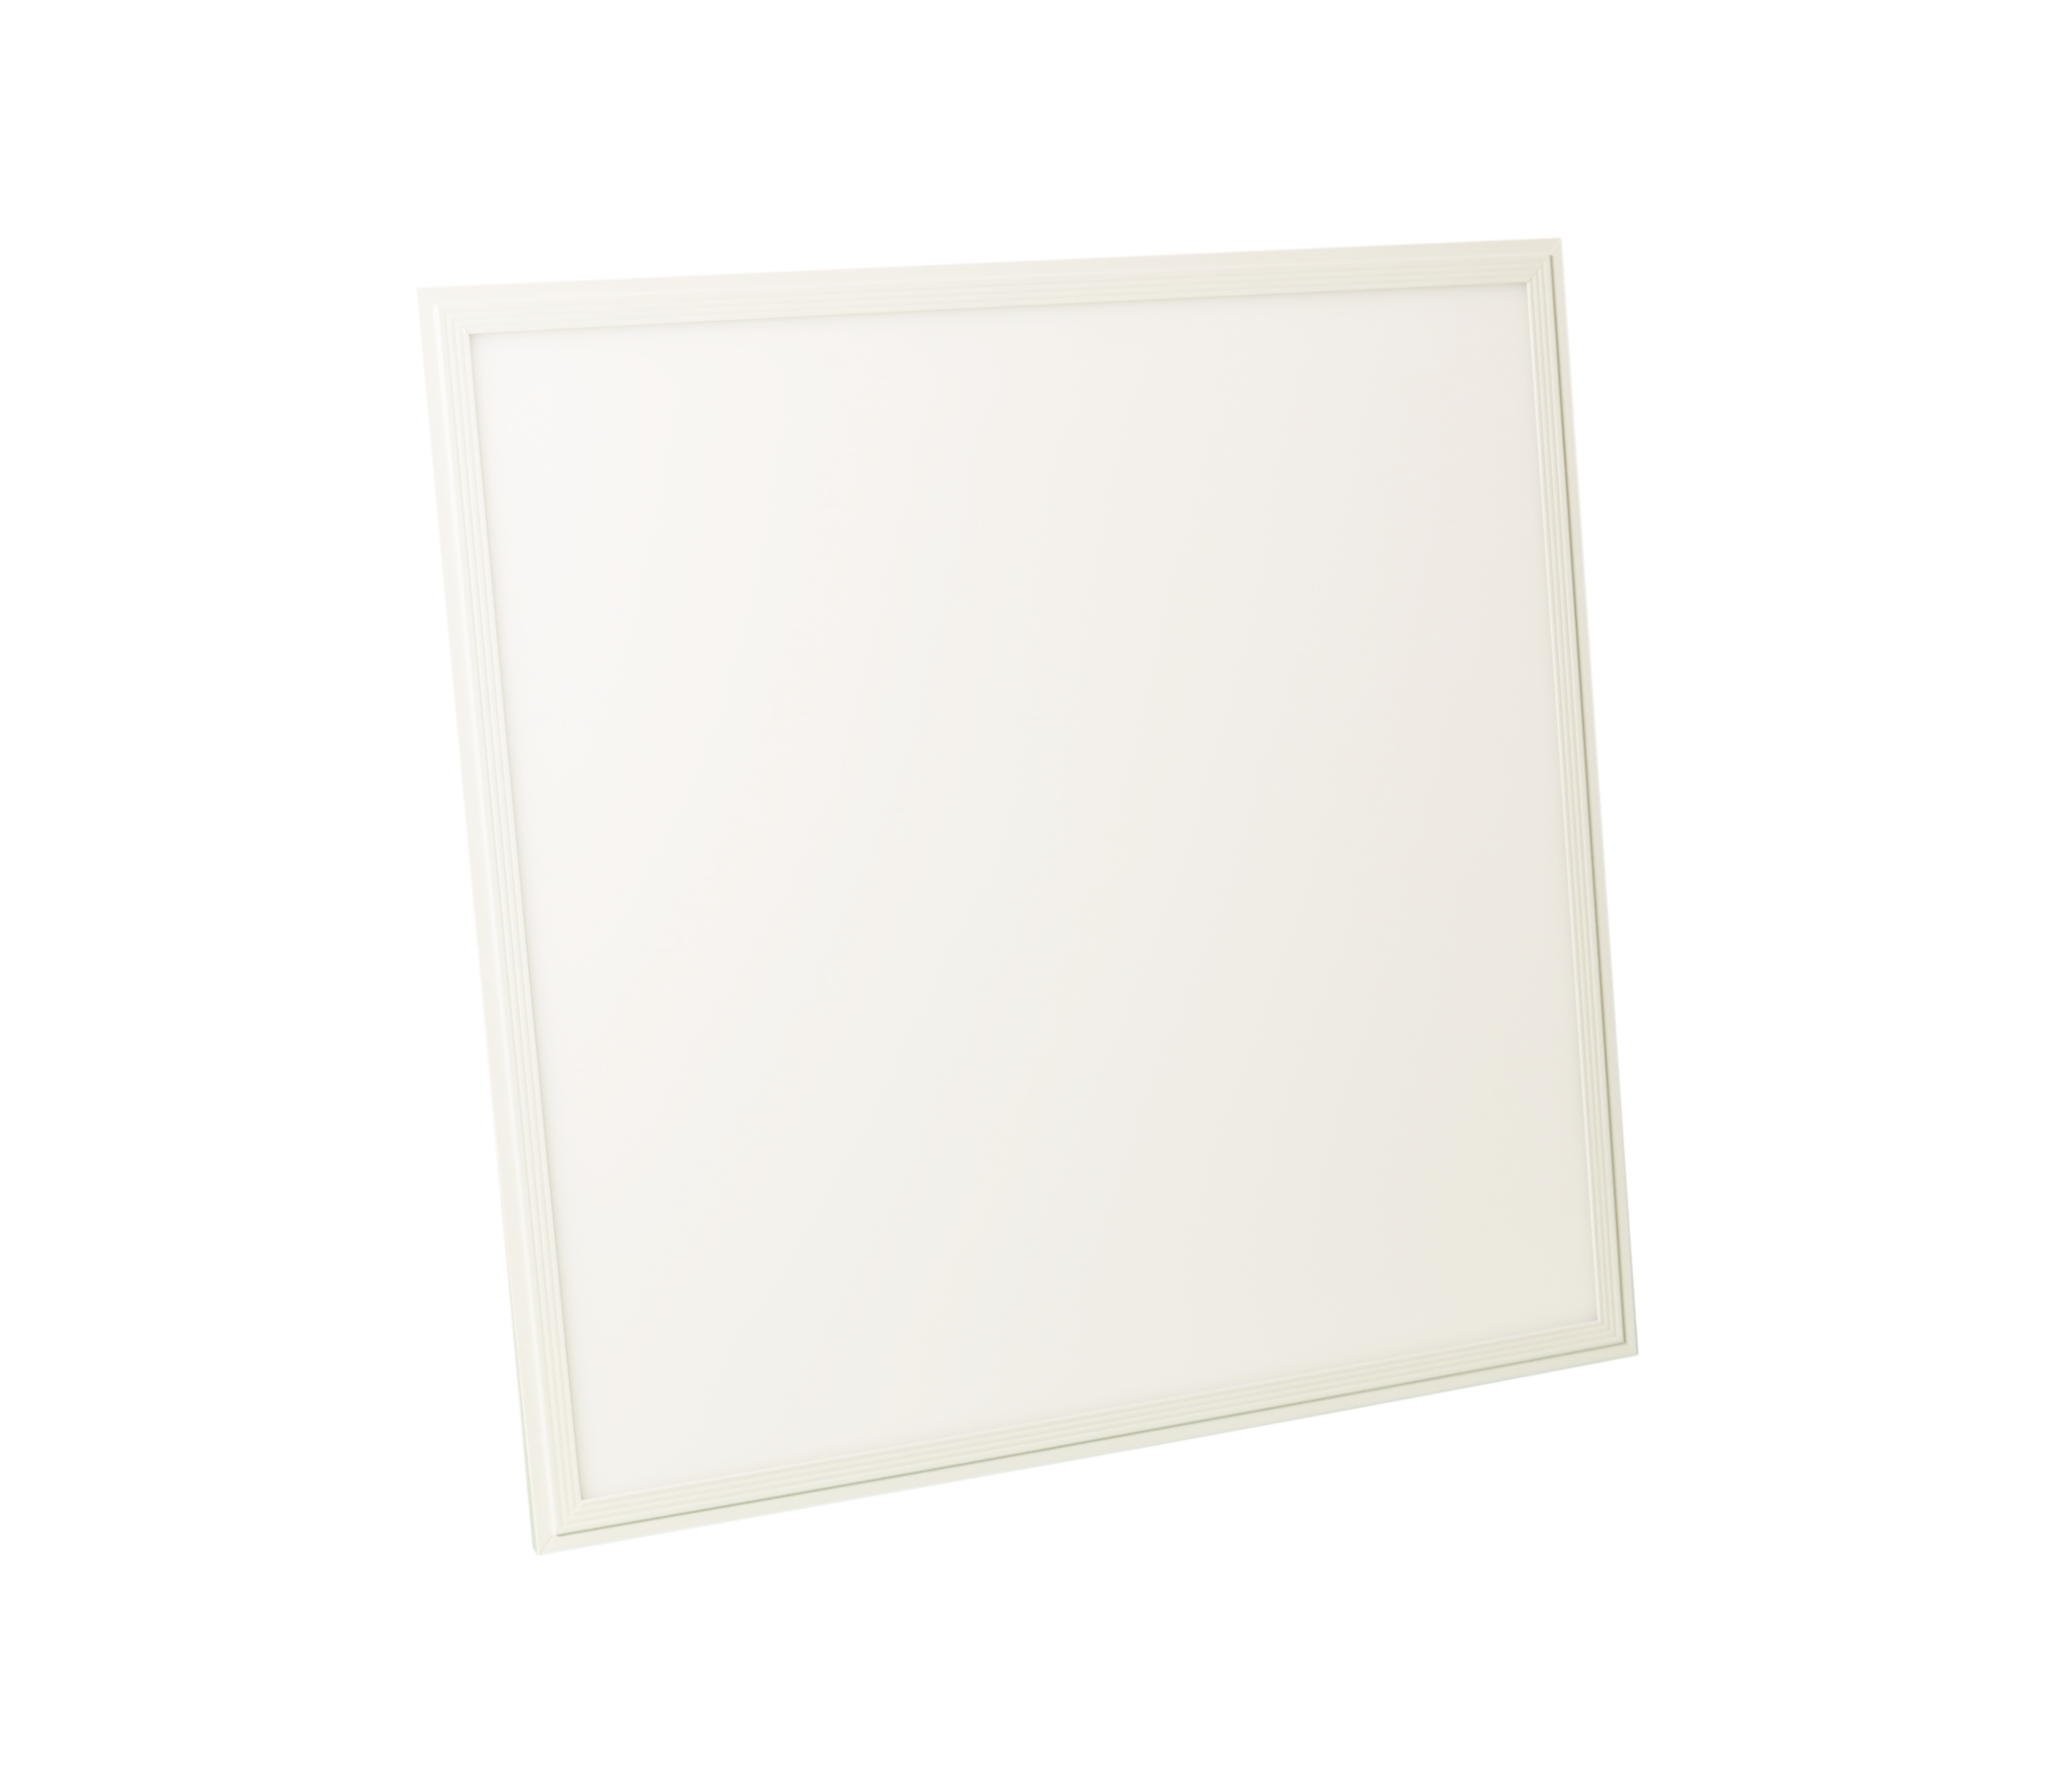 LED LIGHT PANEL - 36W - 600mm X 600mm - 6000K - 120L/W